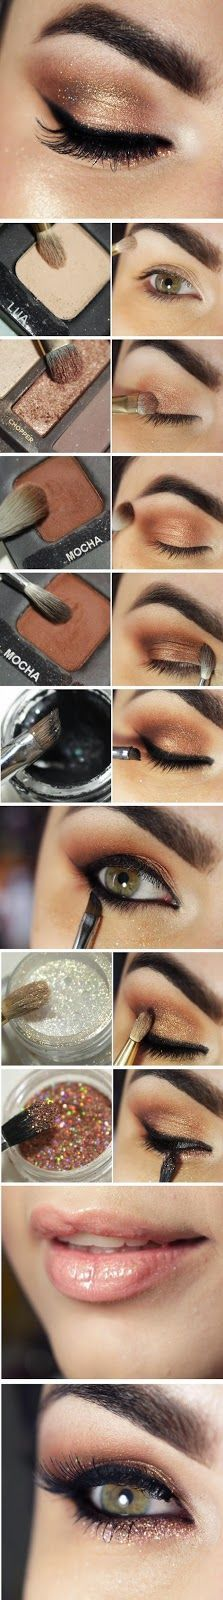 10 Steps To Do Flawless Makeup At Home To Rock At Any Party - Page 3 of 5 - Trend To Wear